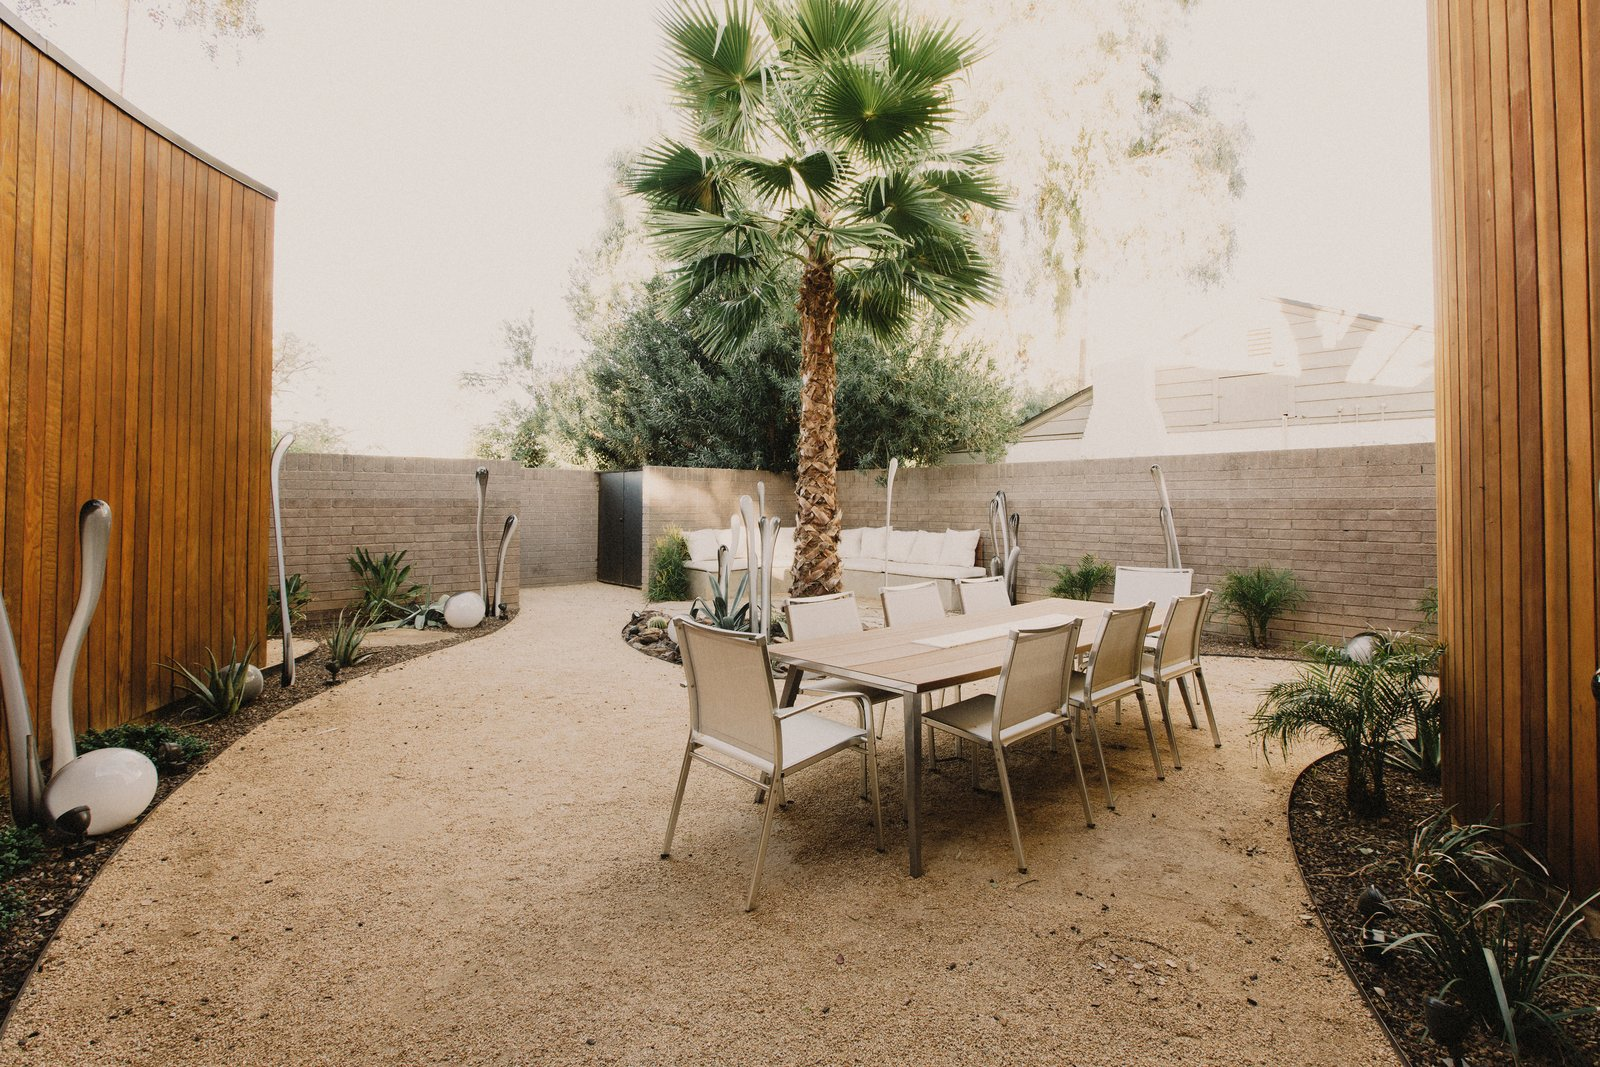 Outdoor, Desert, Shrubs, Trees, Decomposed Granite Patio, Porch, Deck, and Stone Patio, Porch, Deck Front courtyard extends living functions outside of the house, allowing the house to live much larger than its footprint  Curves House by The Ranch Mine